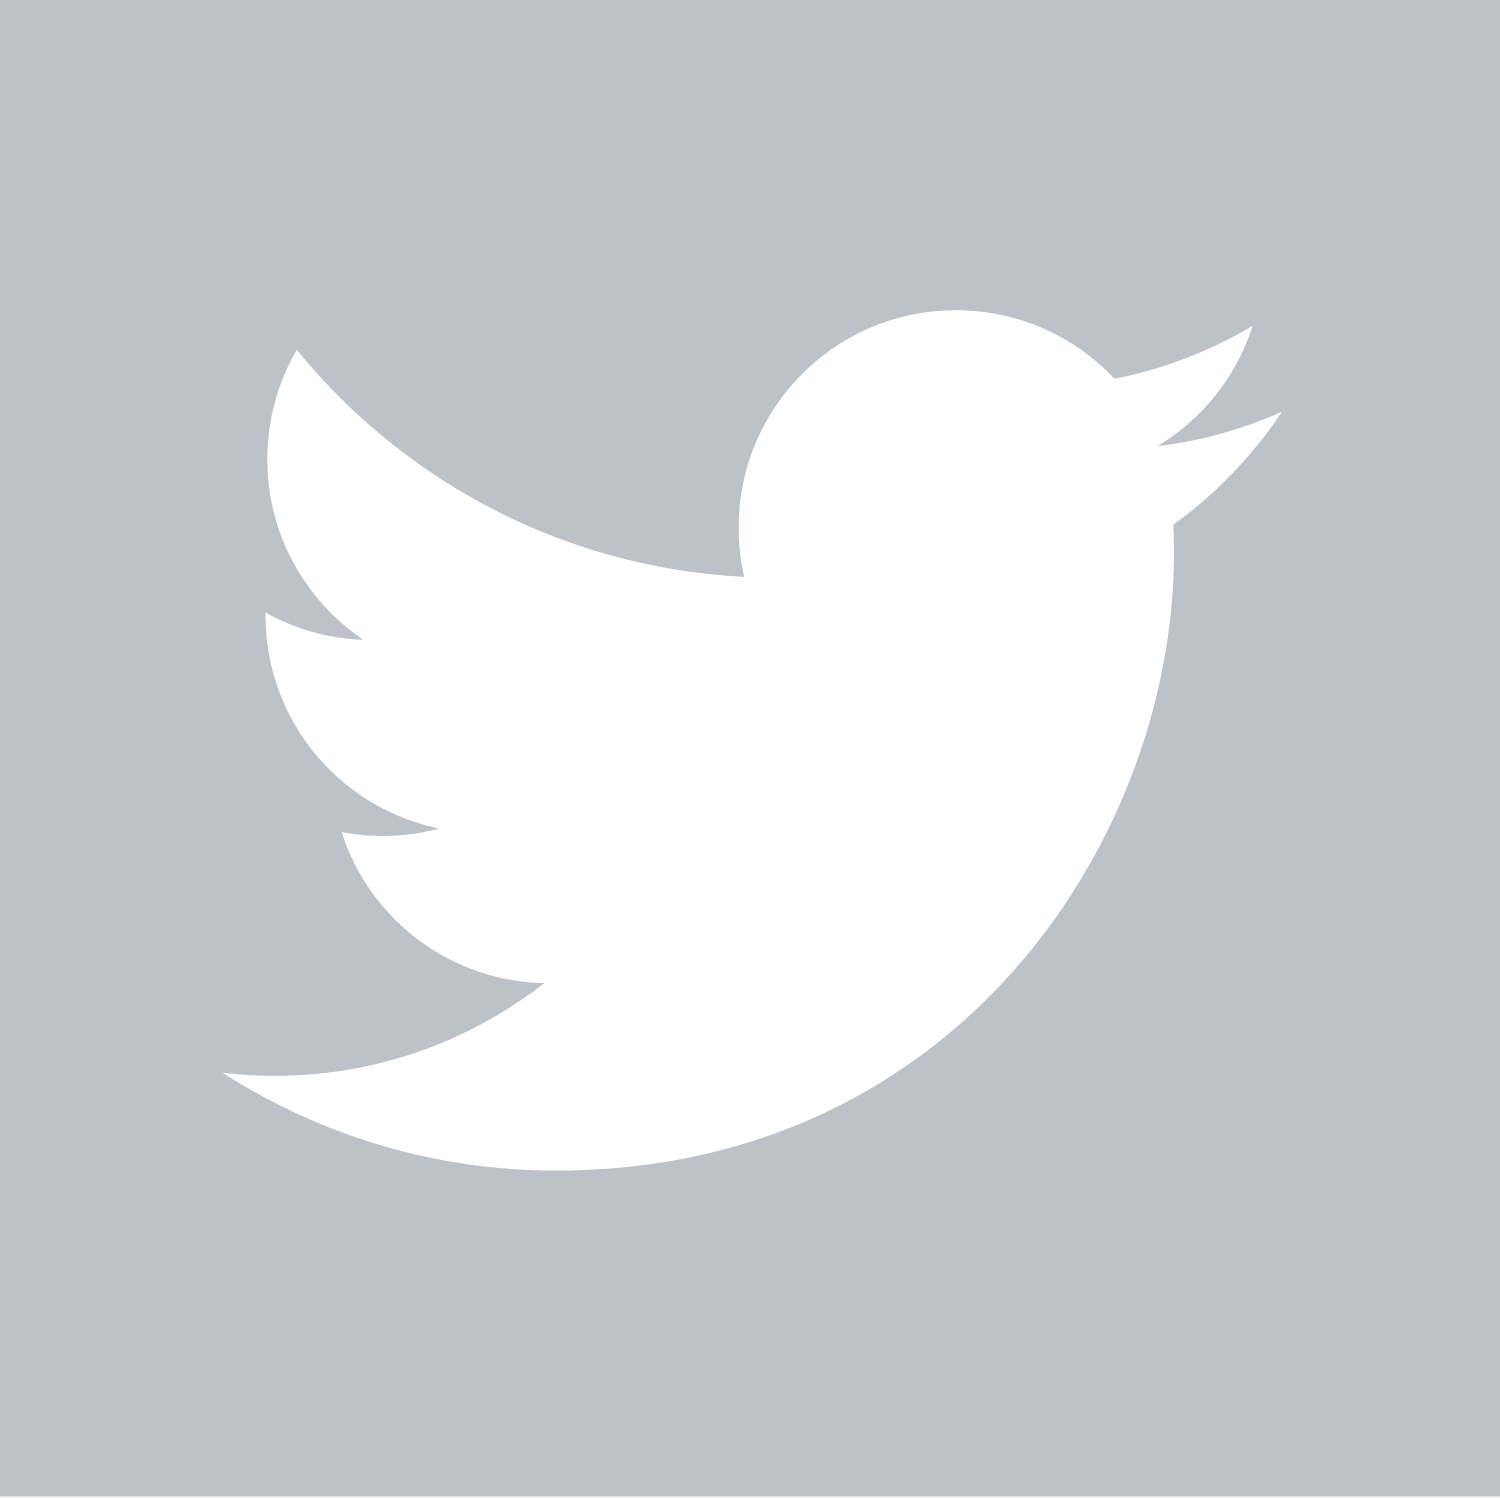 twittericon-01.png